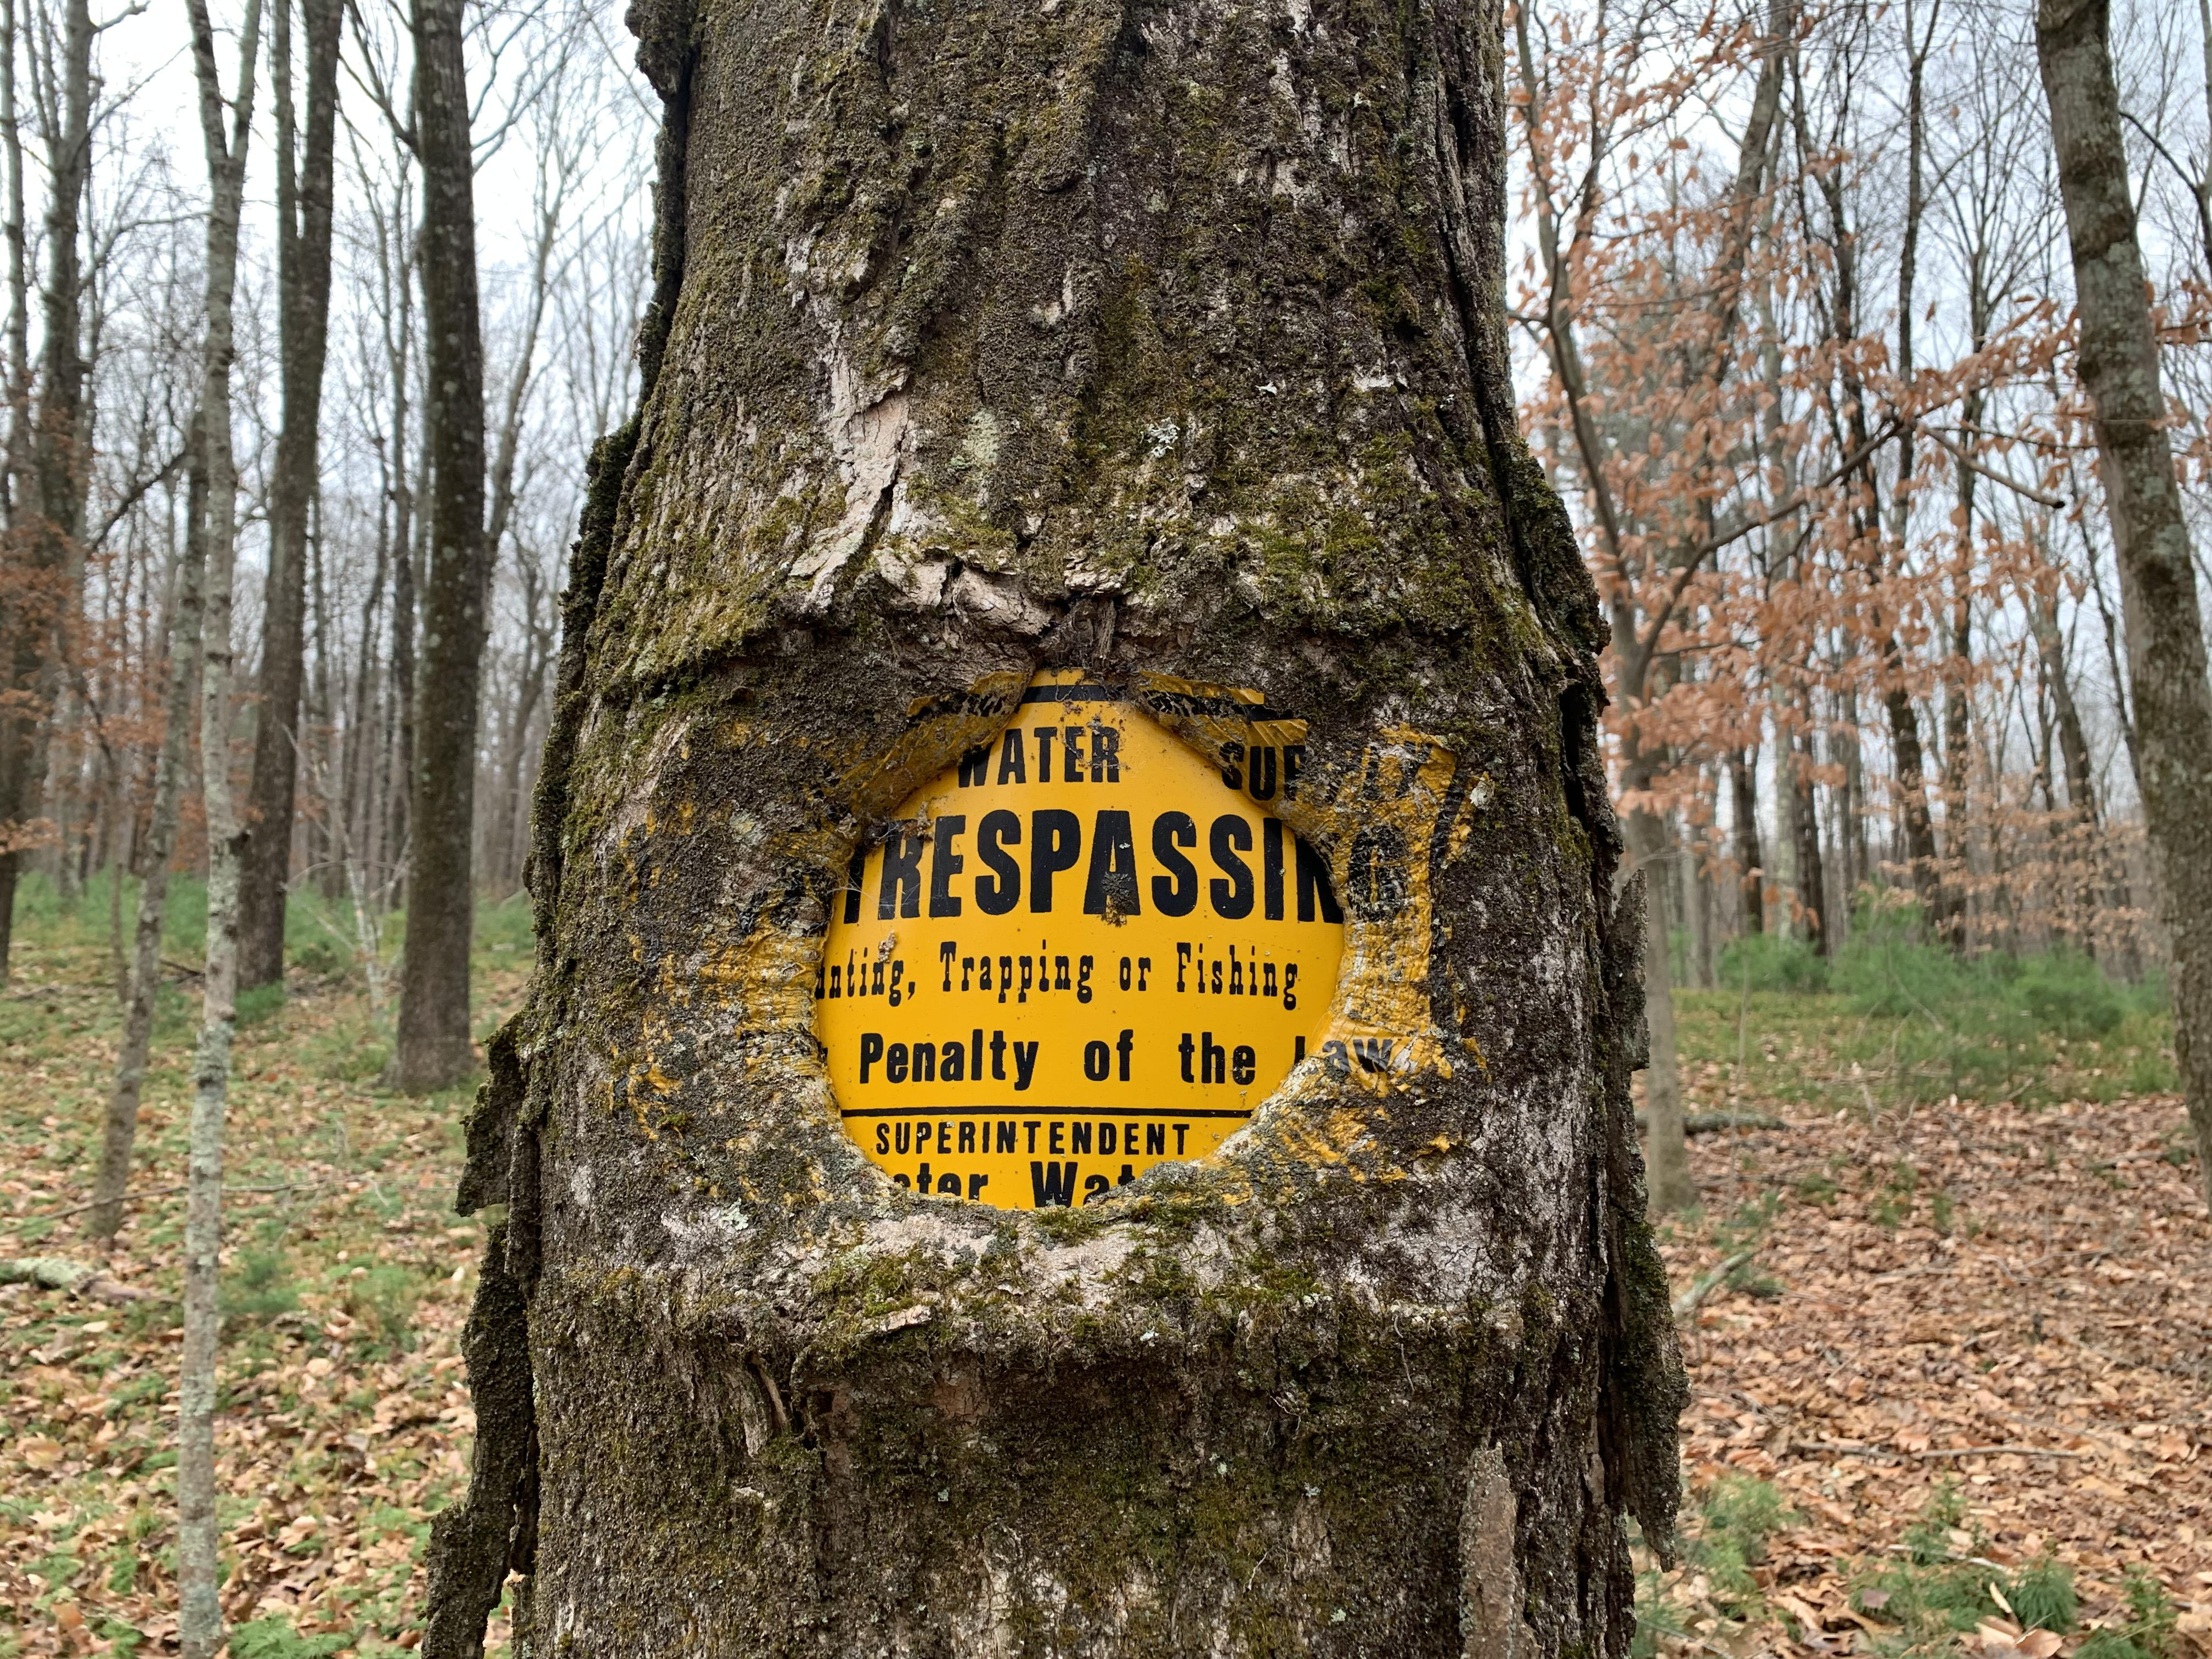 This tree swallowing a trespassing sign